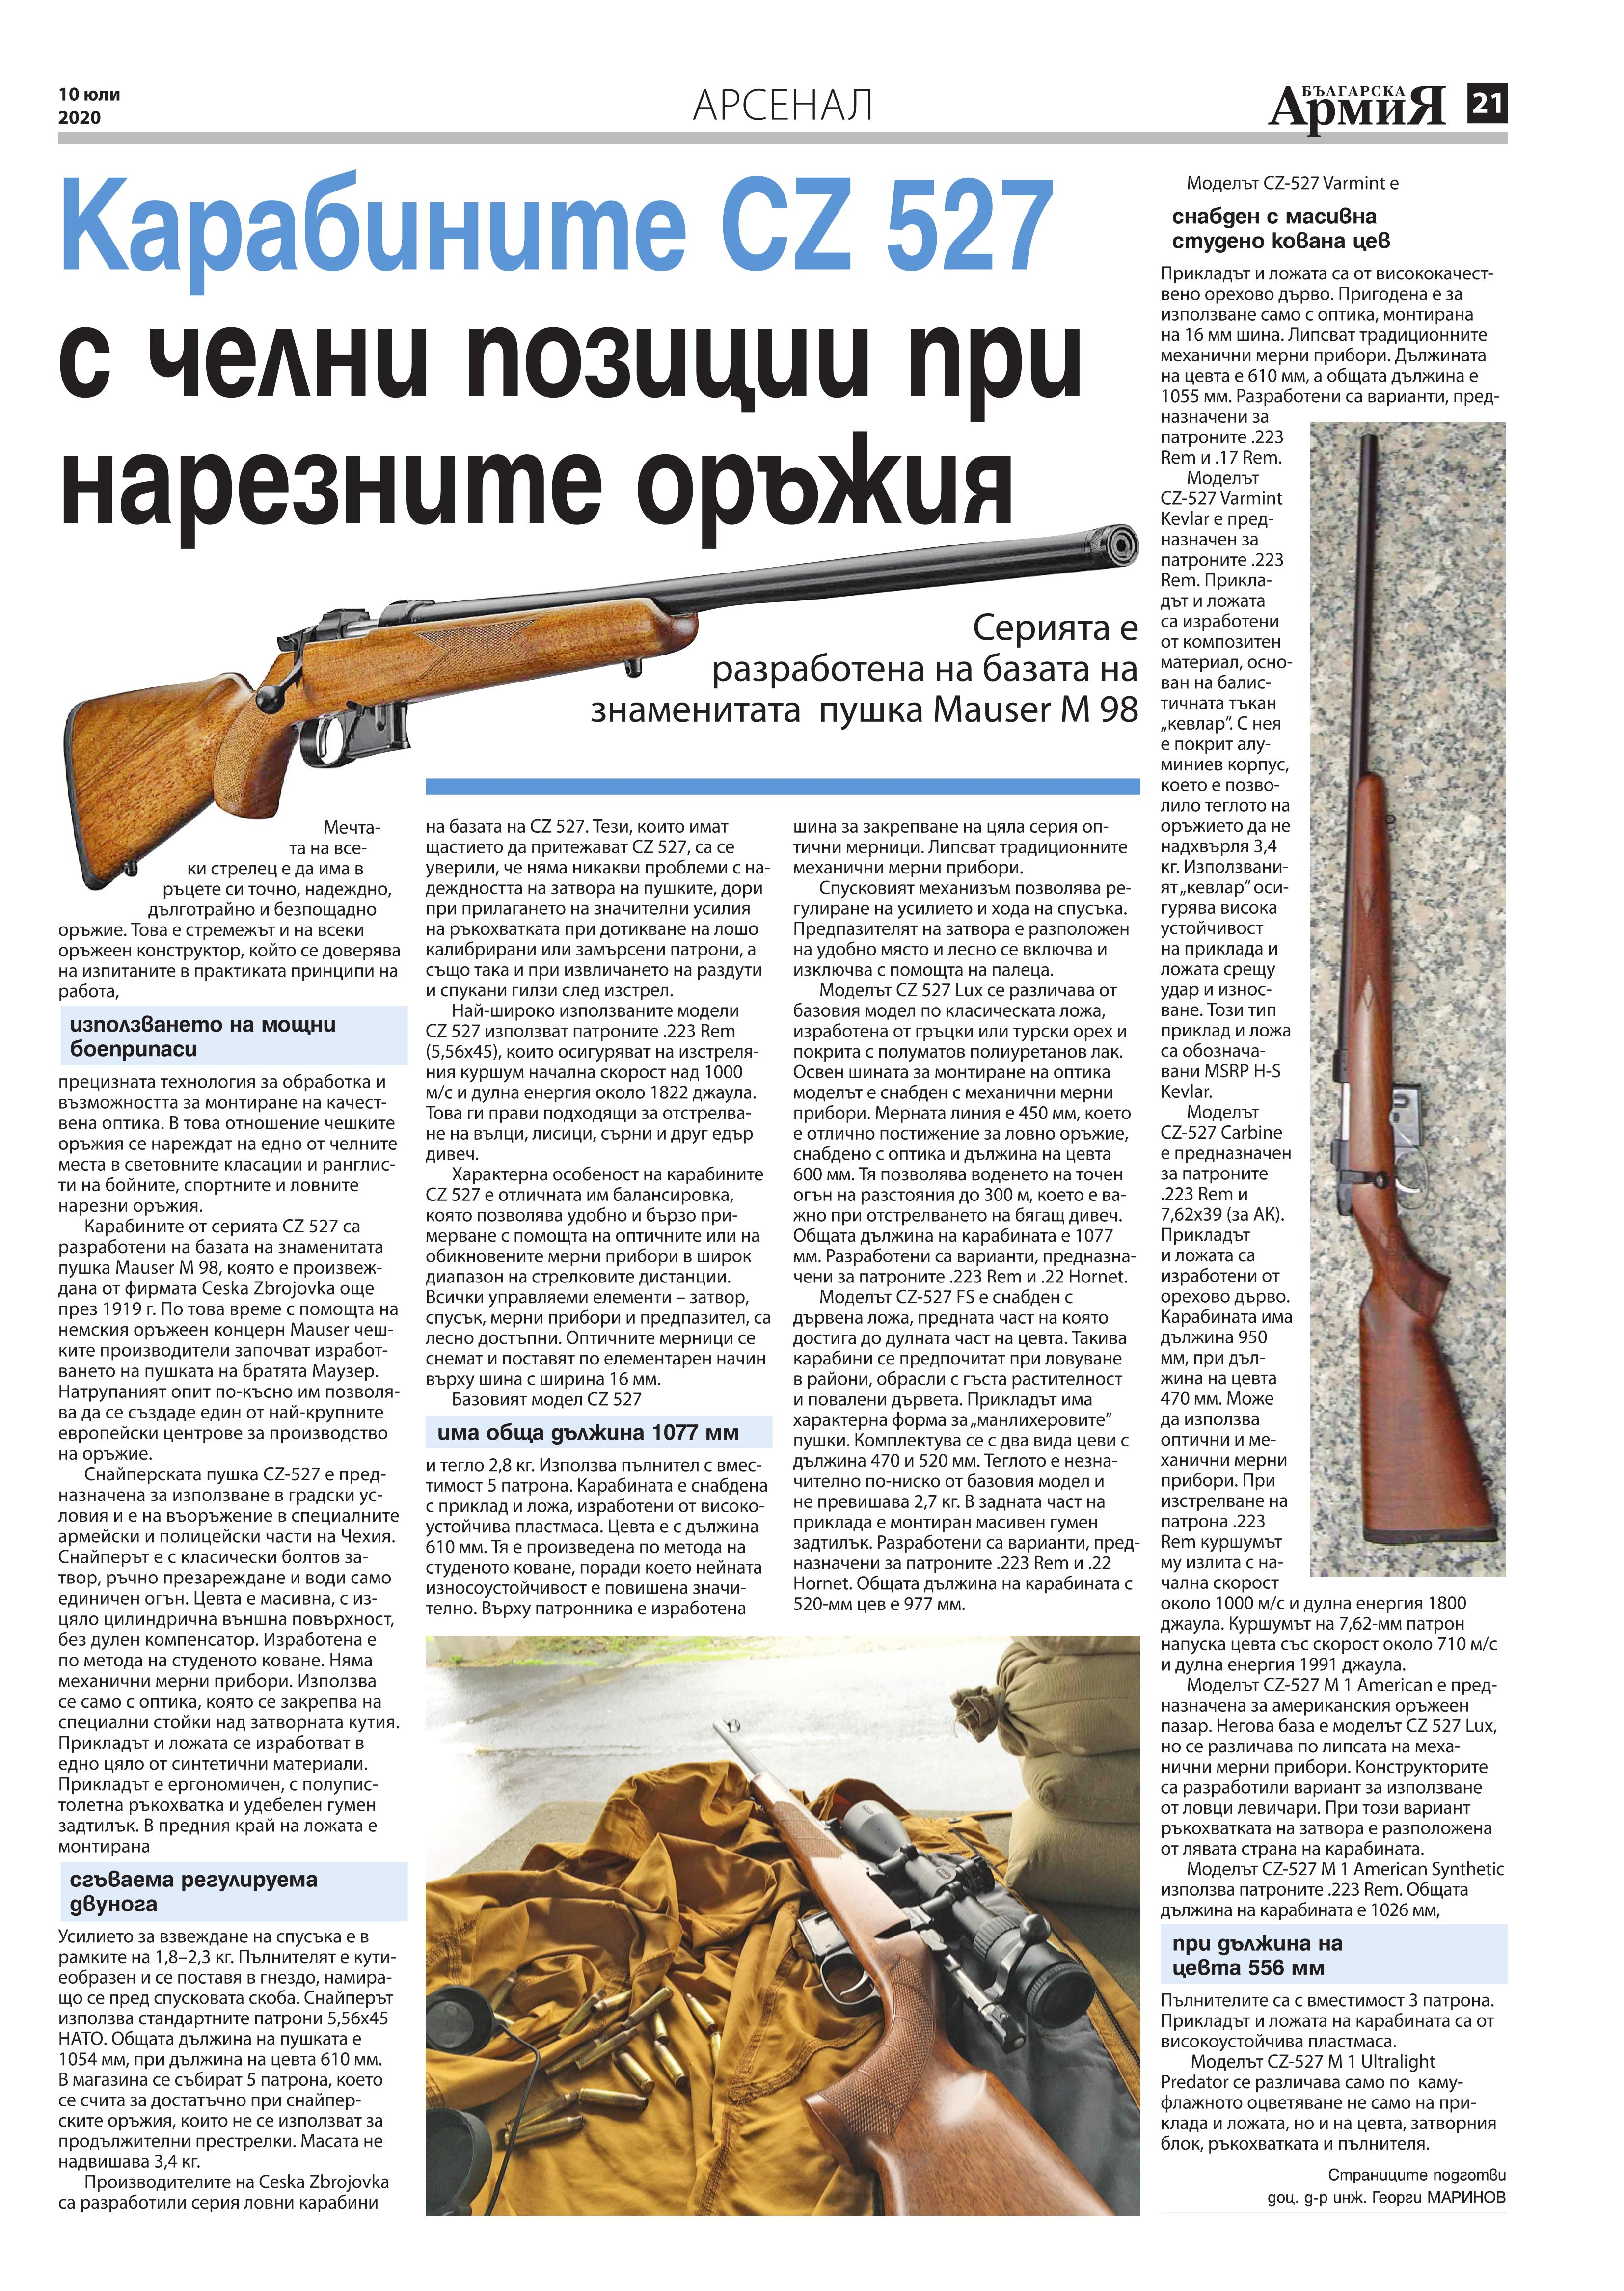 https://www.armymedia.bg/wp-content/uploads/2015/06/21.page1_-146.jpg